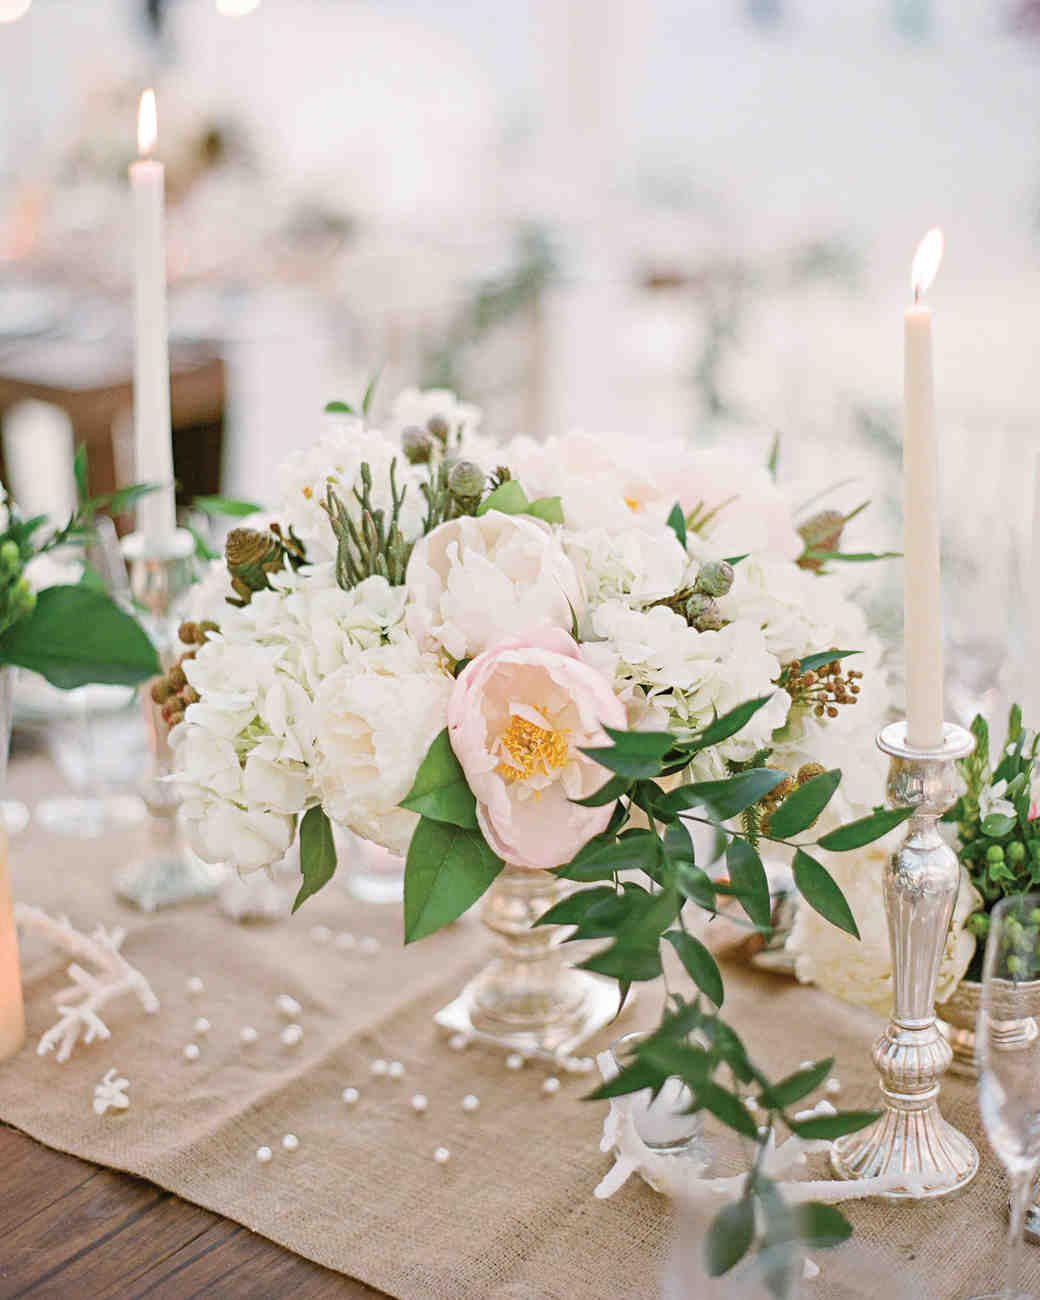 Wedding Reception Centerpieces Candles: The Prettiest Peony Wedding Centerpieces